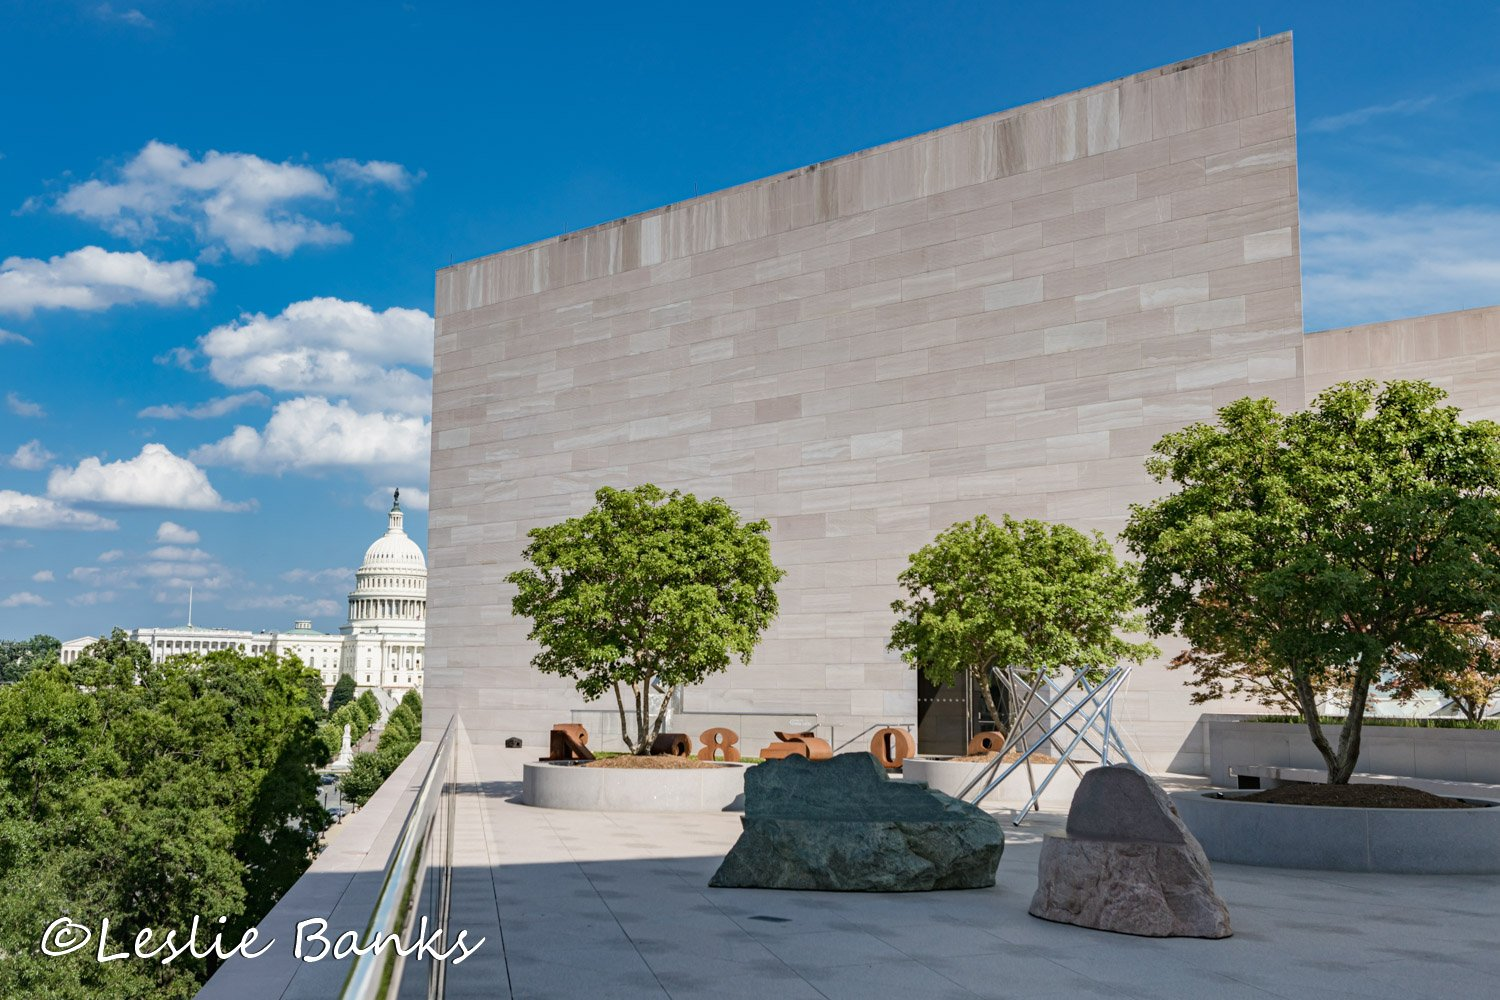 Roof Terrace at National Gallery of Art